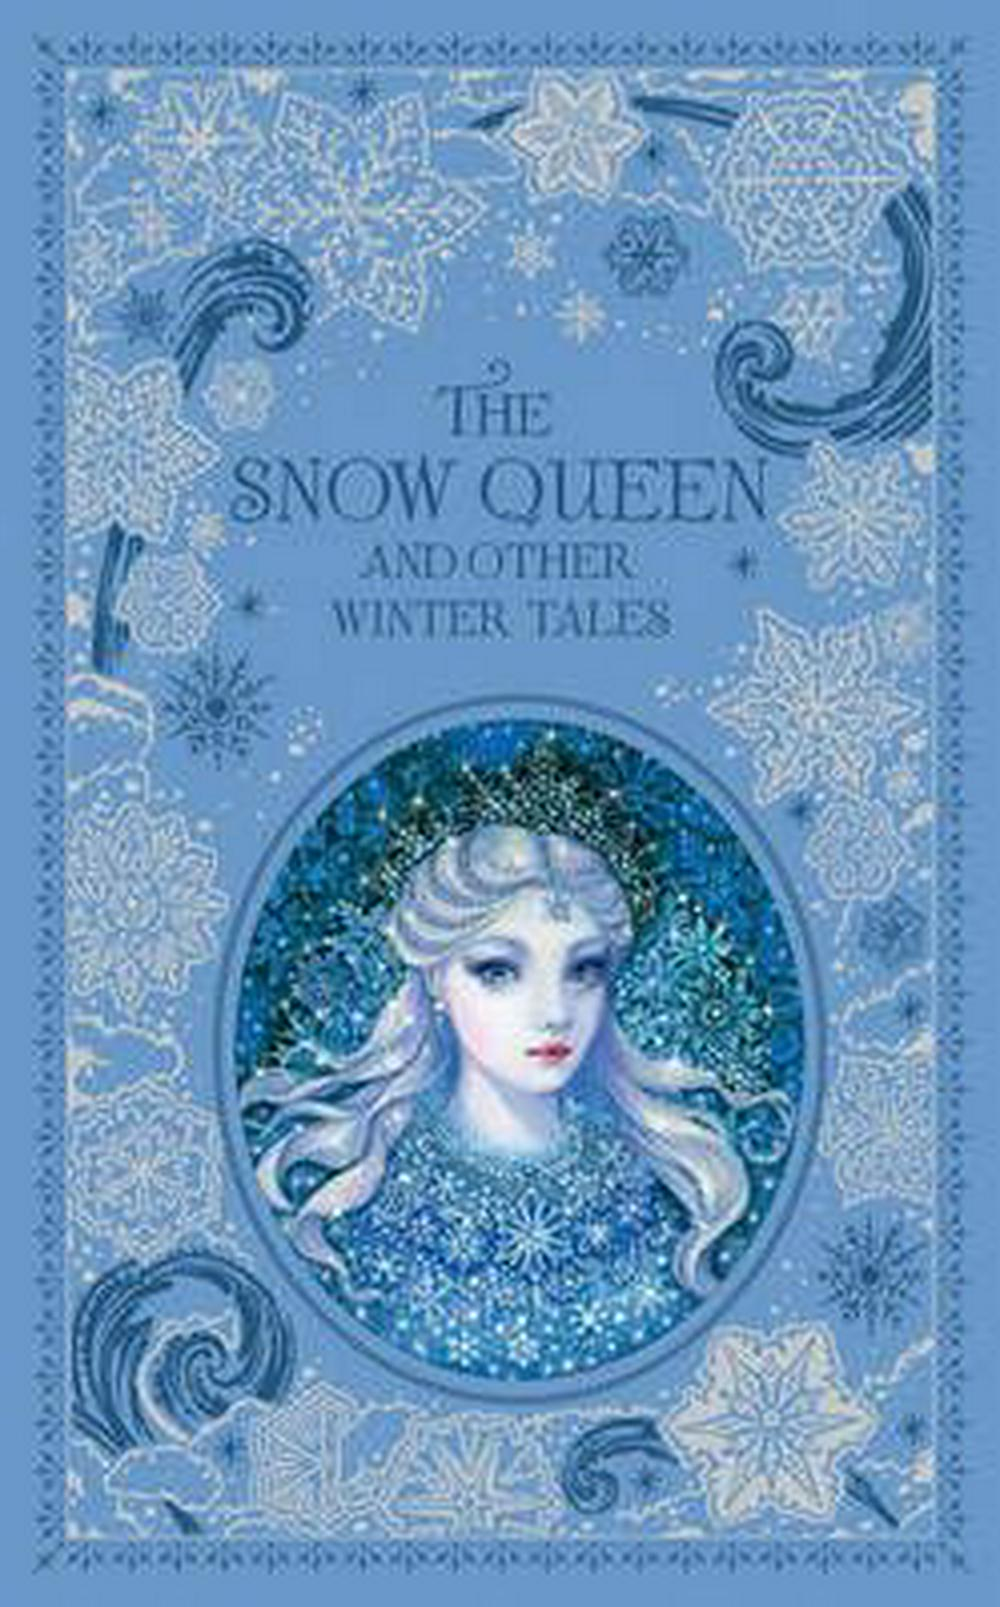 The Snow Queen and Other Winter TalesBarnes & Noble Leatherbound Classic Collection by Various, ISBN: 9781435160699